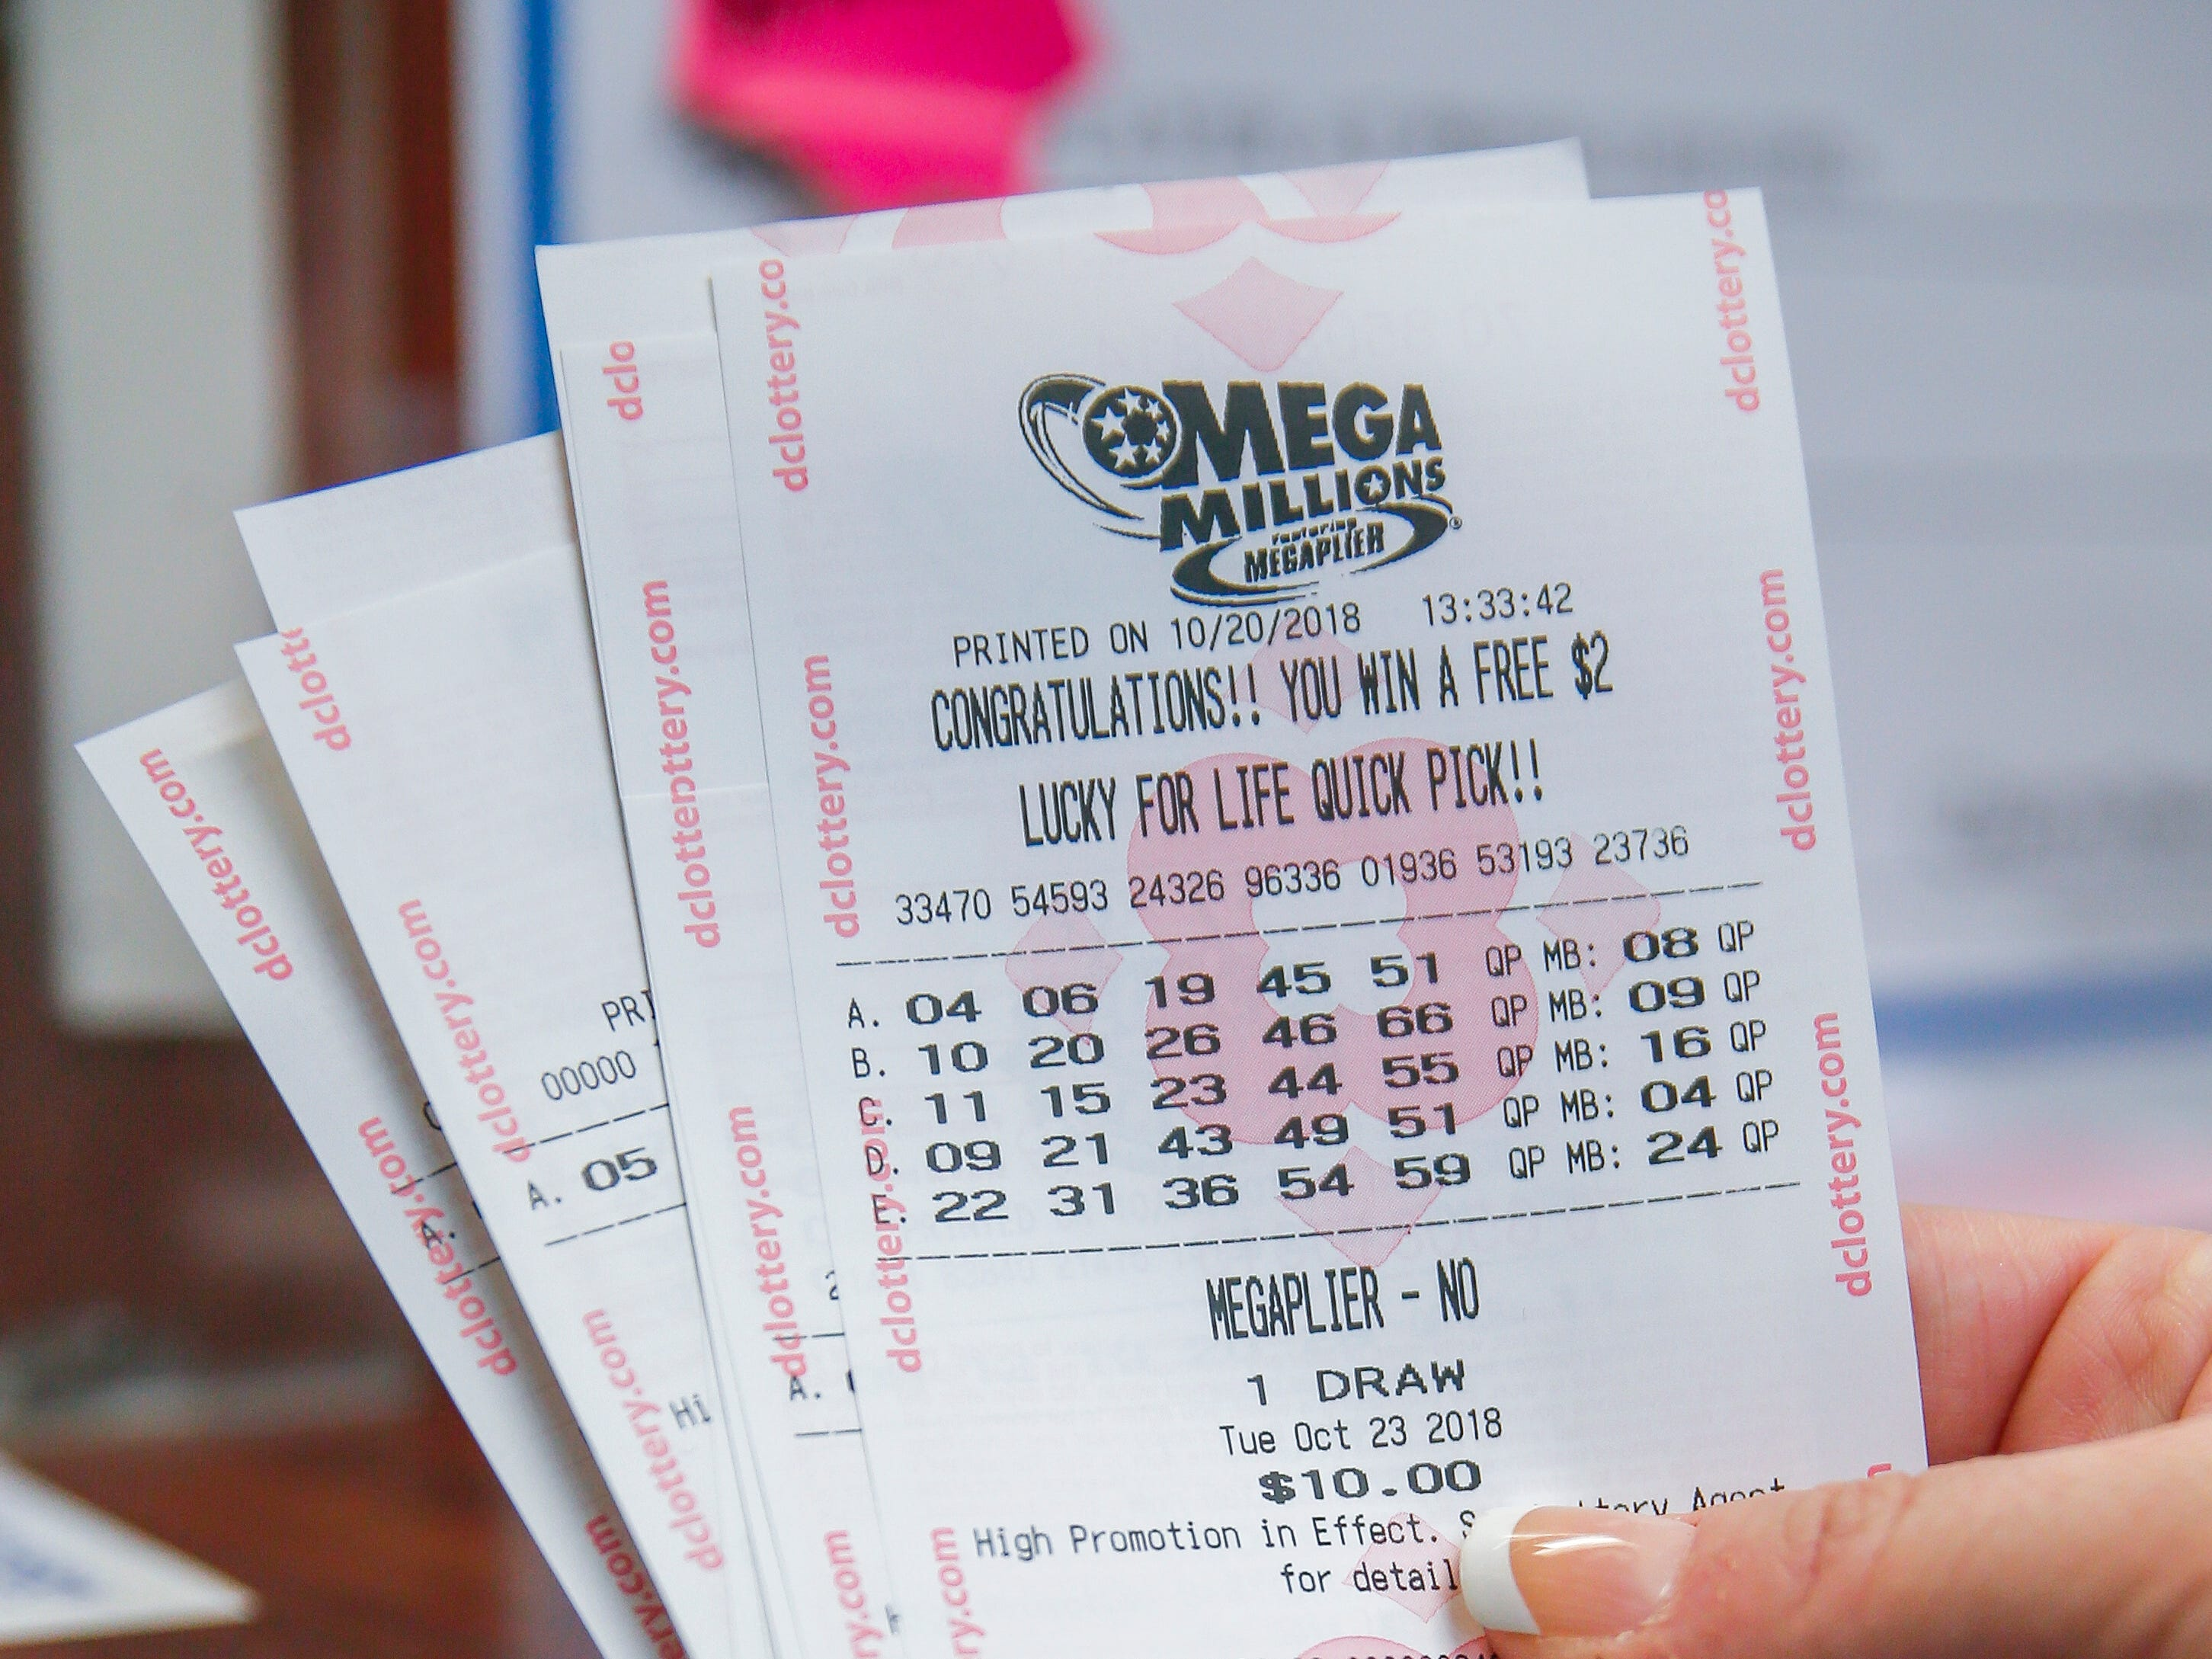 A customer shows her purchased Mega Millions lottery tickets at a retailer in Washington, D.C., Oct. 20, 2018.